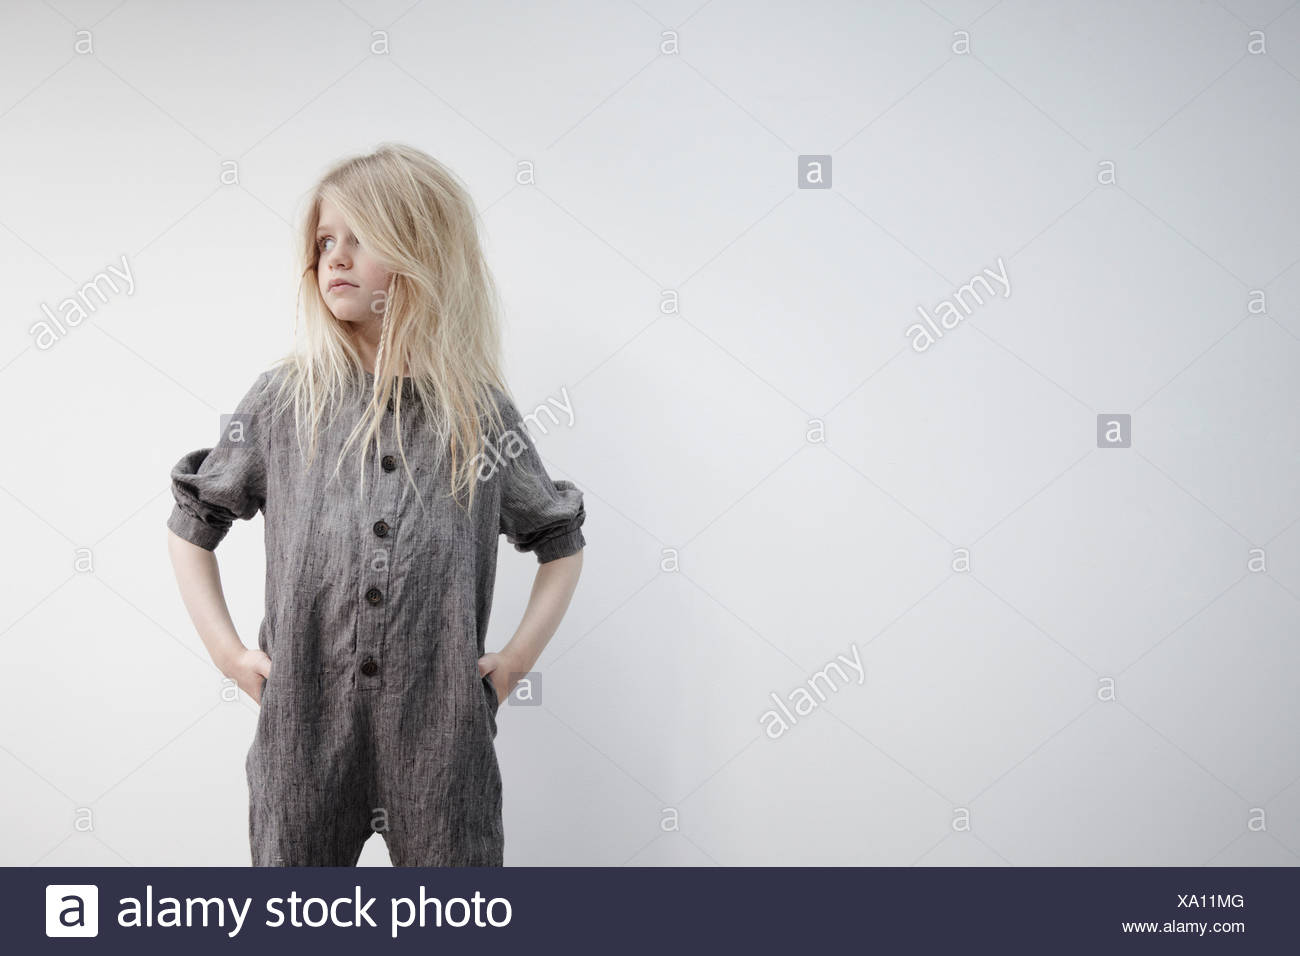 Portrait of Girl with hands on hips Photo Stock